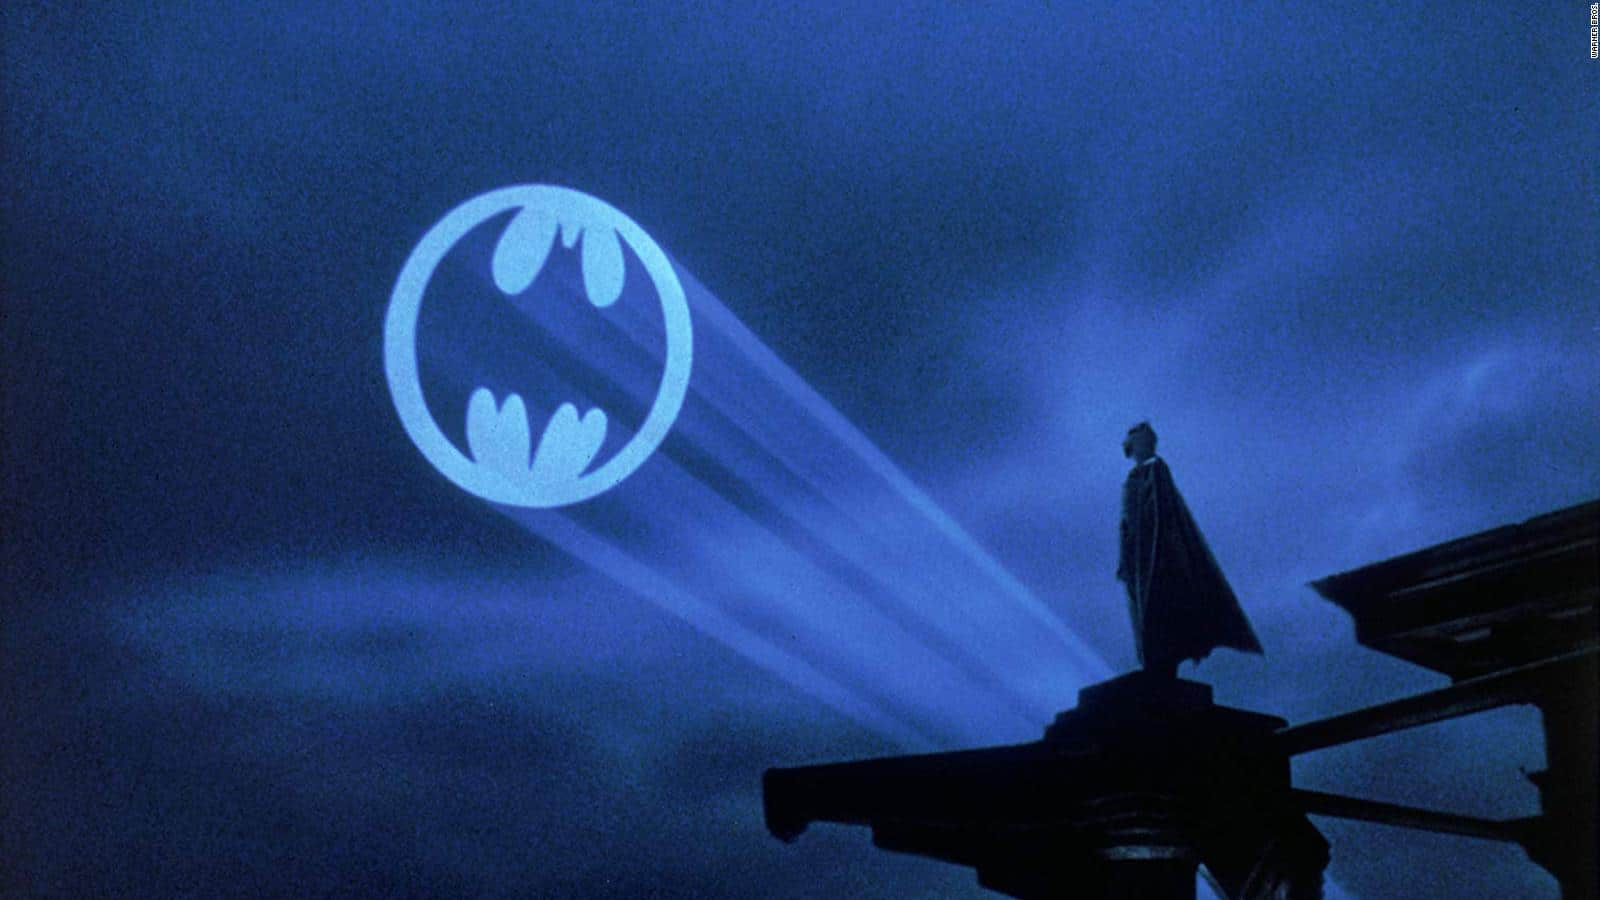 New Batman Fan Theory Summarizes Who the Bat-Signal Is Actually For